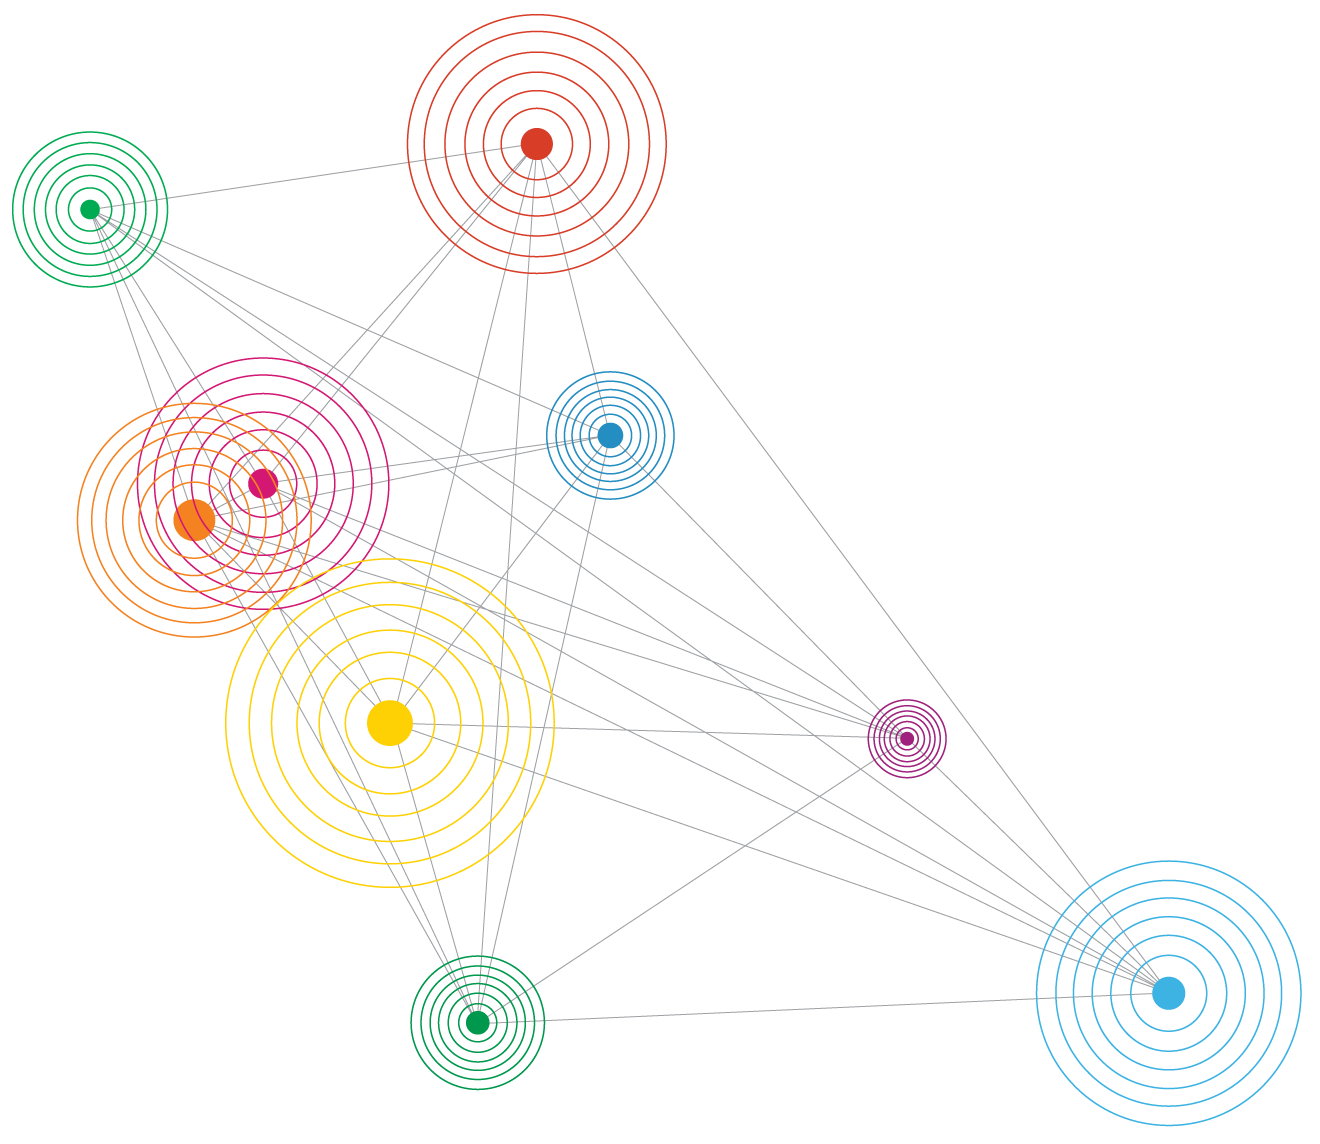 abstract diagram of multicolored concentric rings connected by diagonal lines